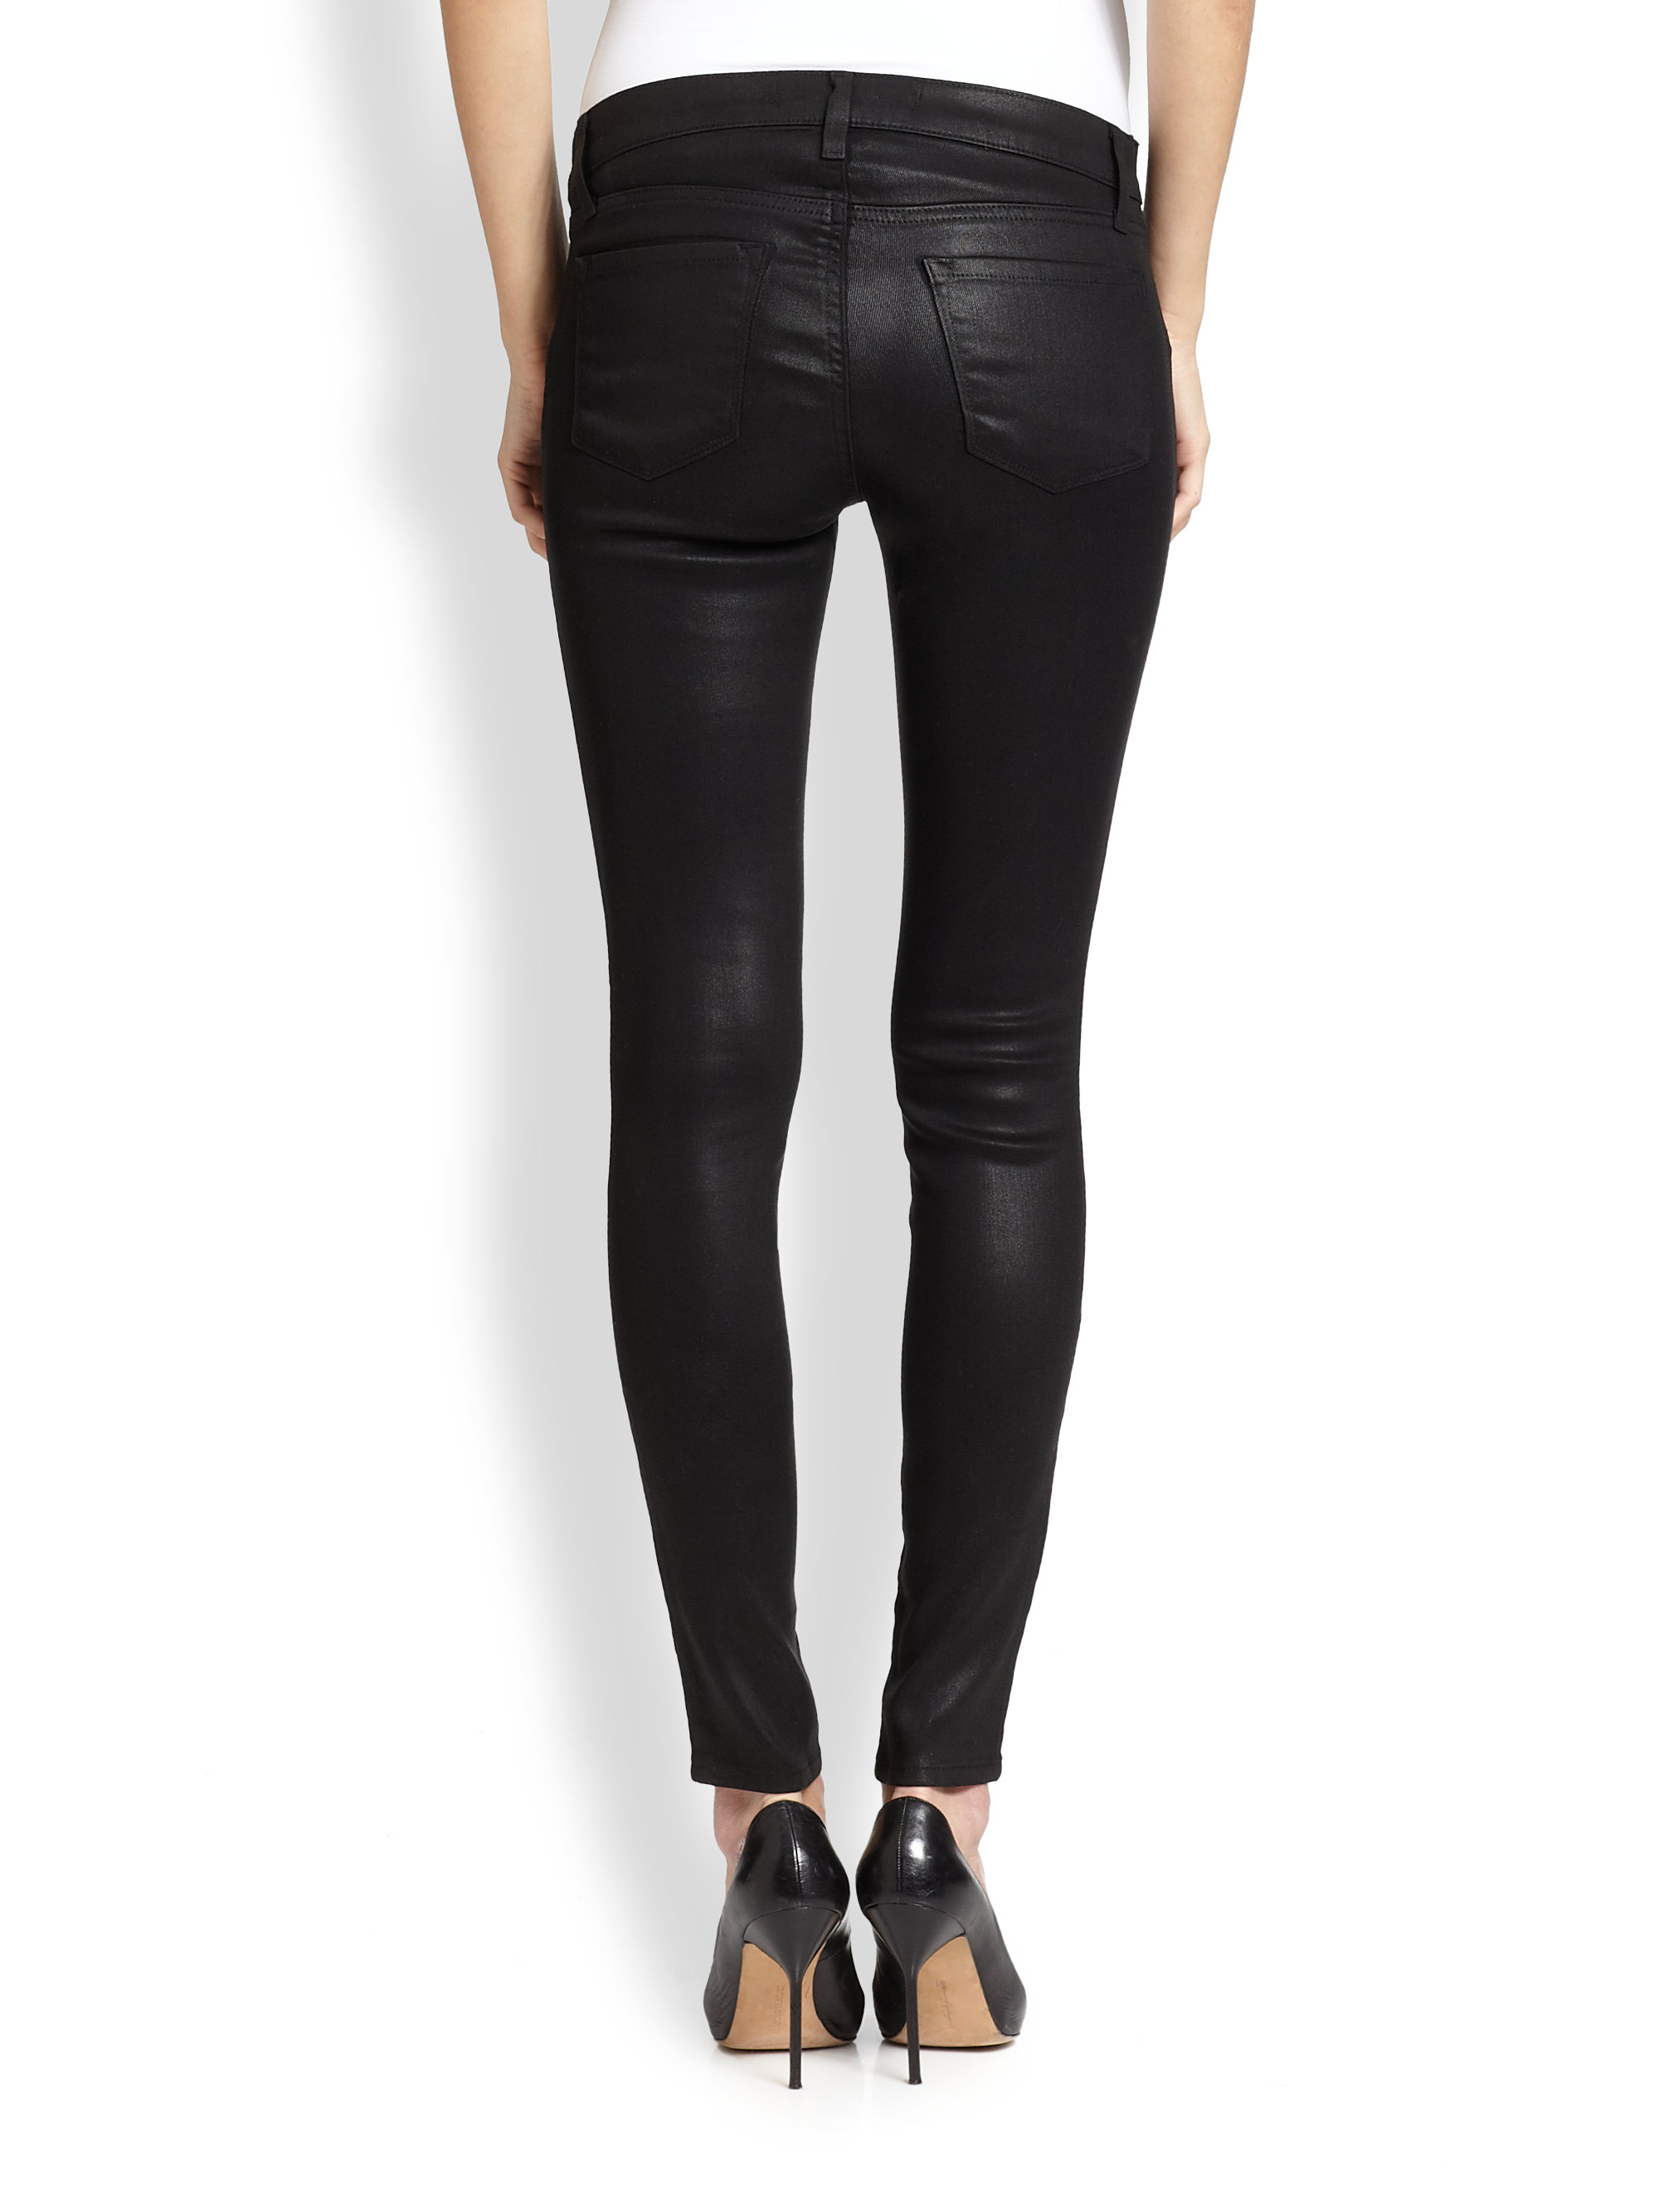 J brand Coated Skinny Maternity Jeans in Black | Lyst